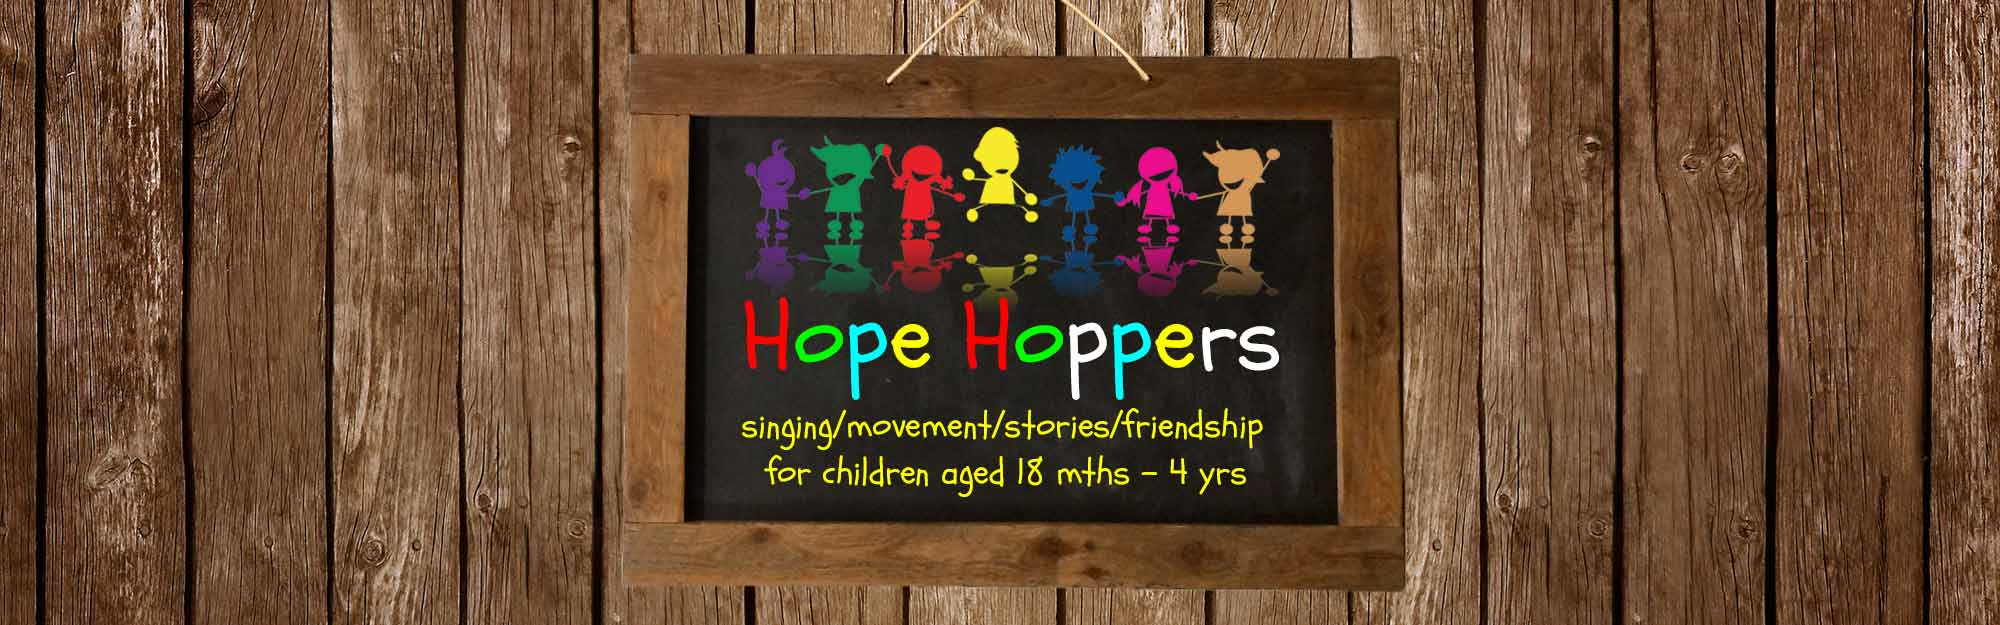 Hope-Hoppers-Banner